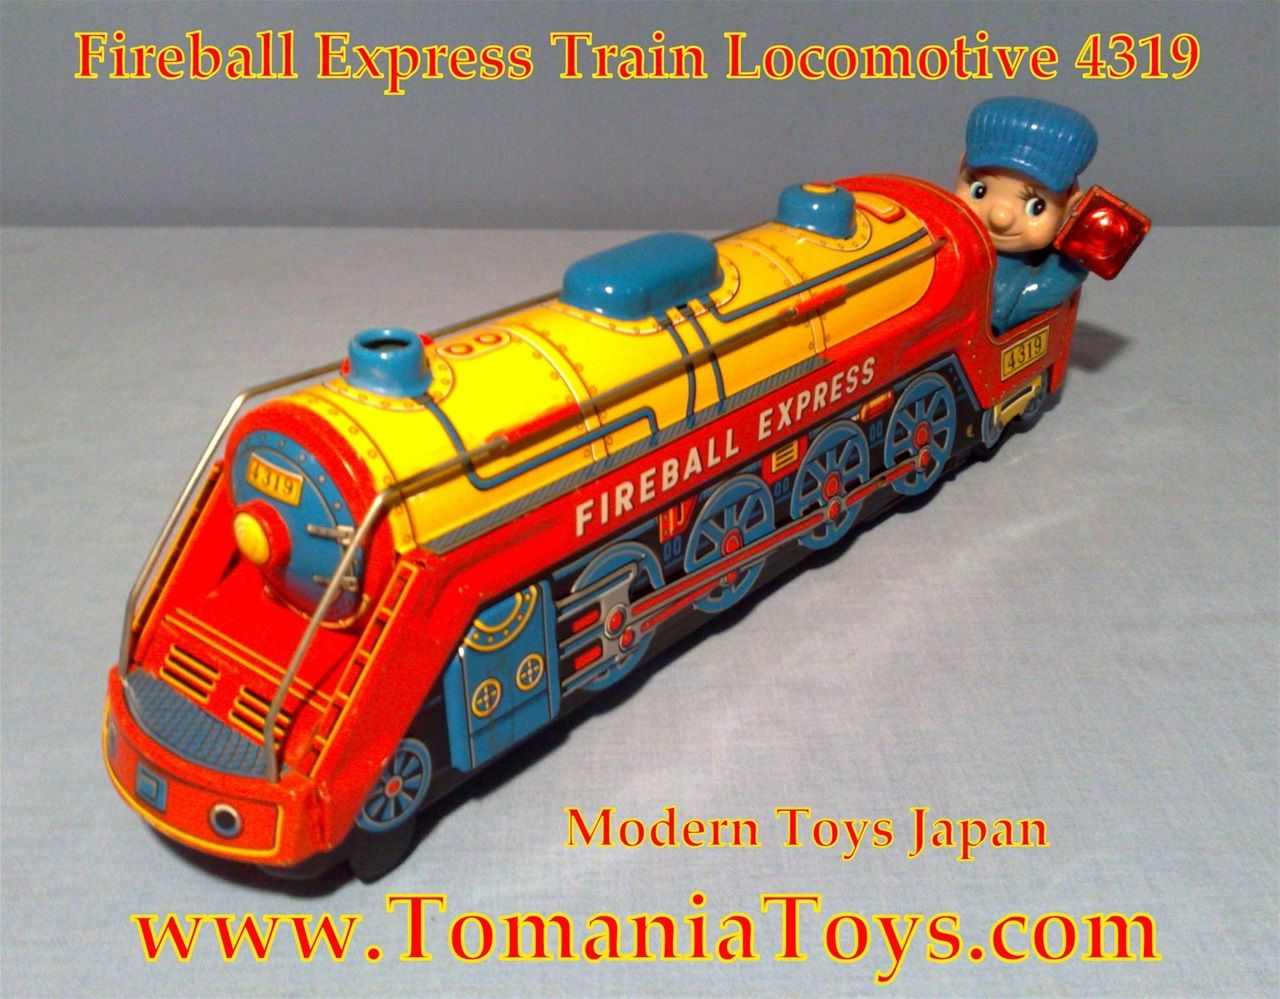 Vintage Japan Tin Toys : Vintage fireball express locomotive modern toys